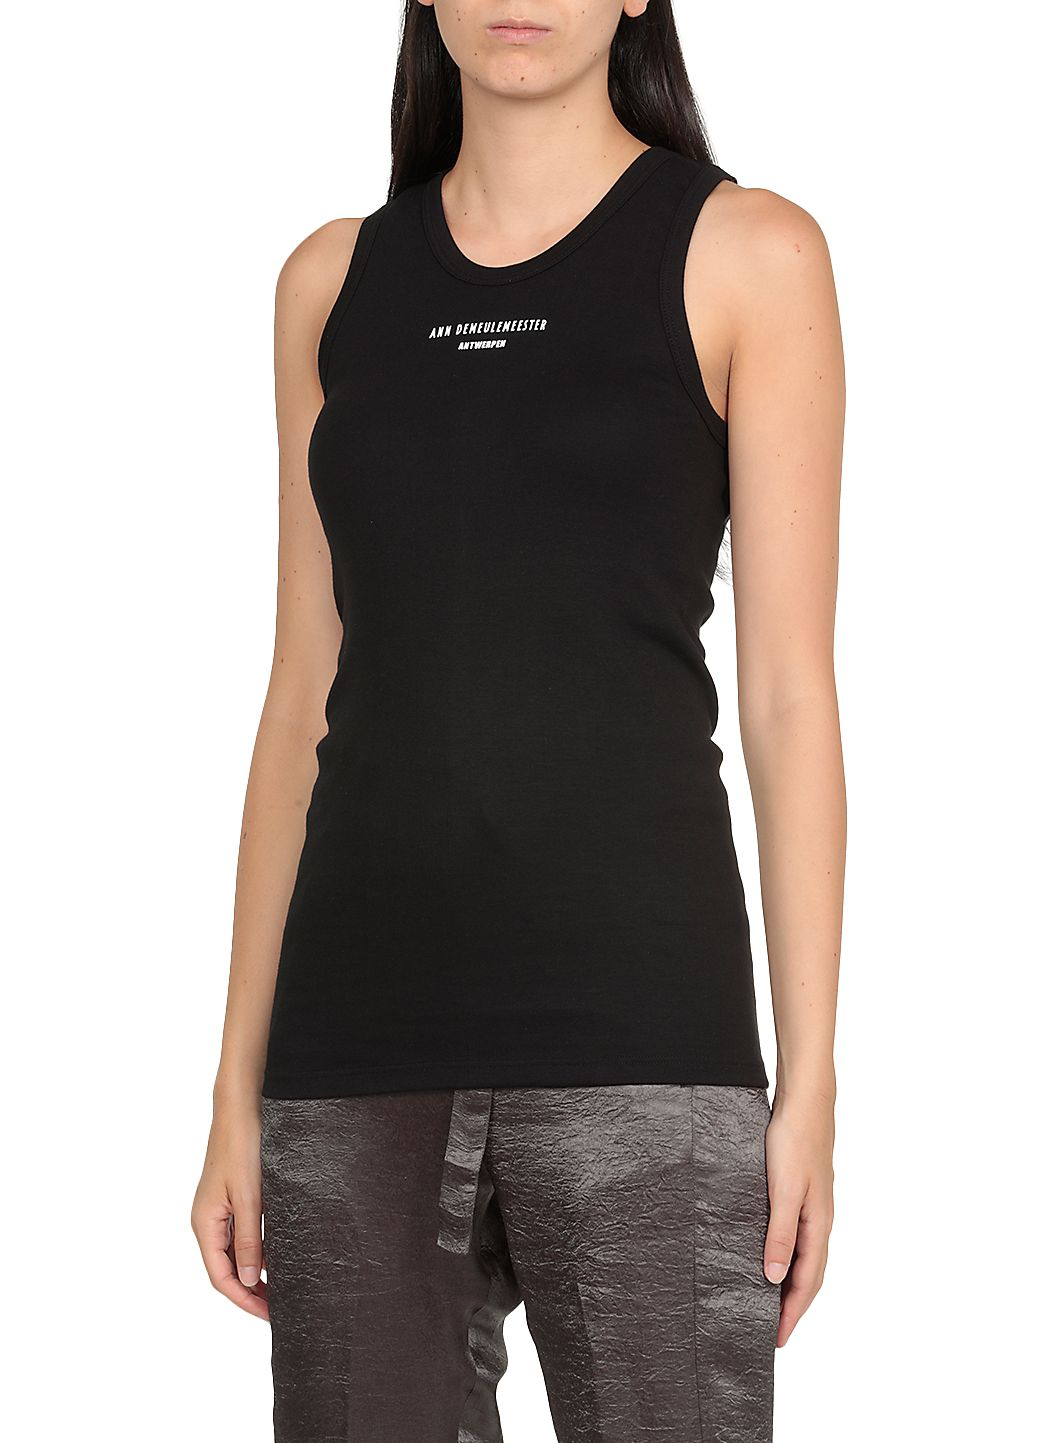 Tank top cote black